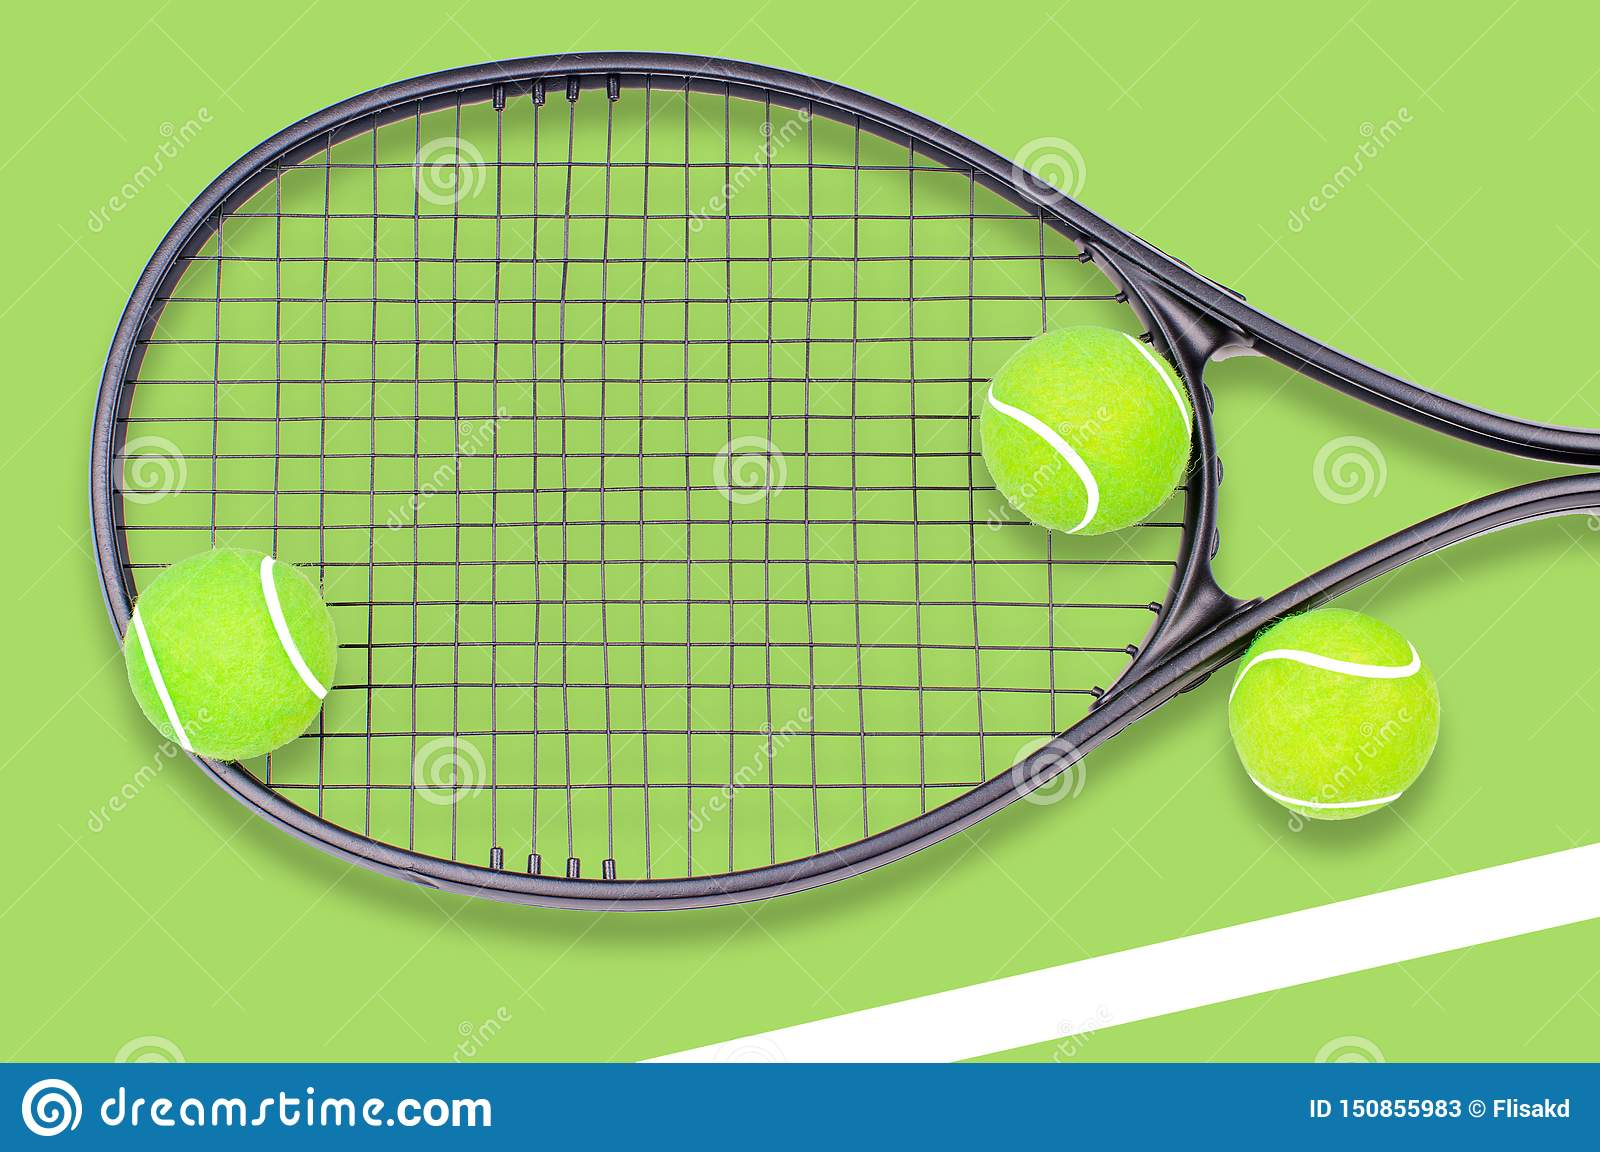 Tennis racket and ball sports on green background